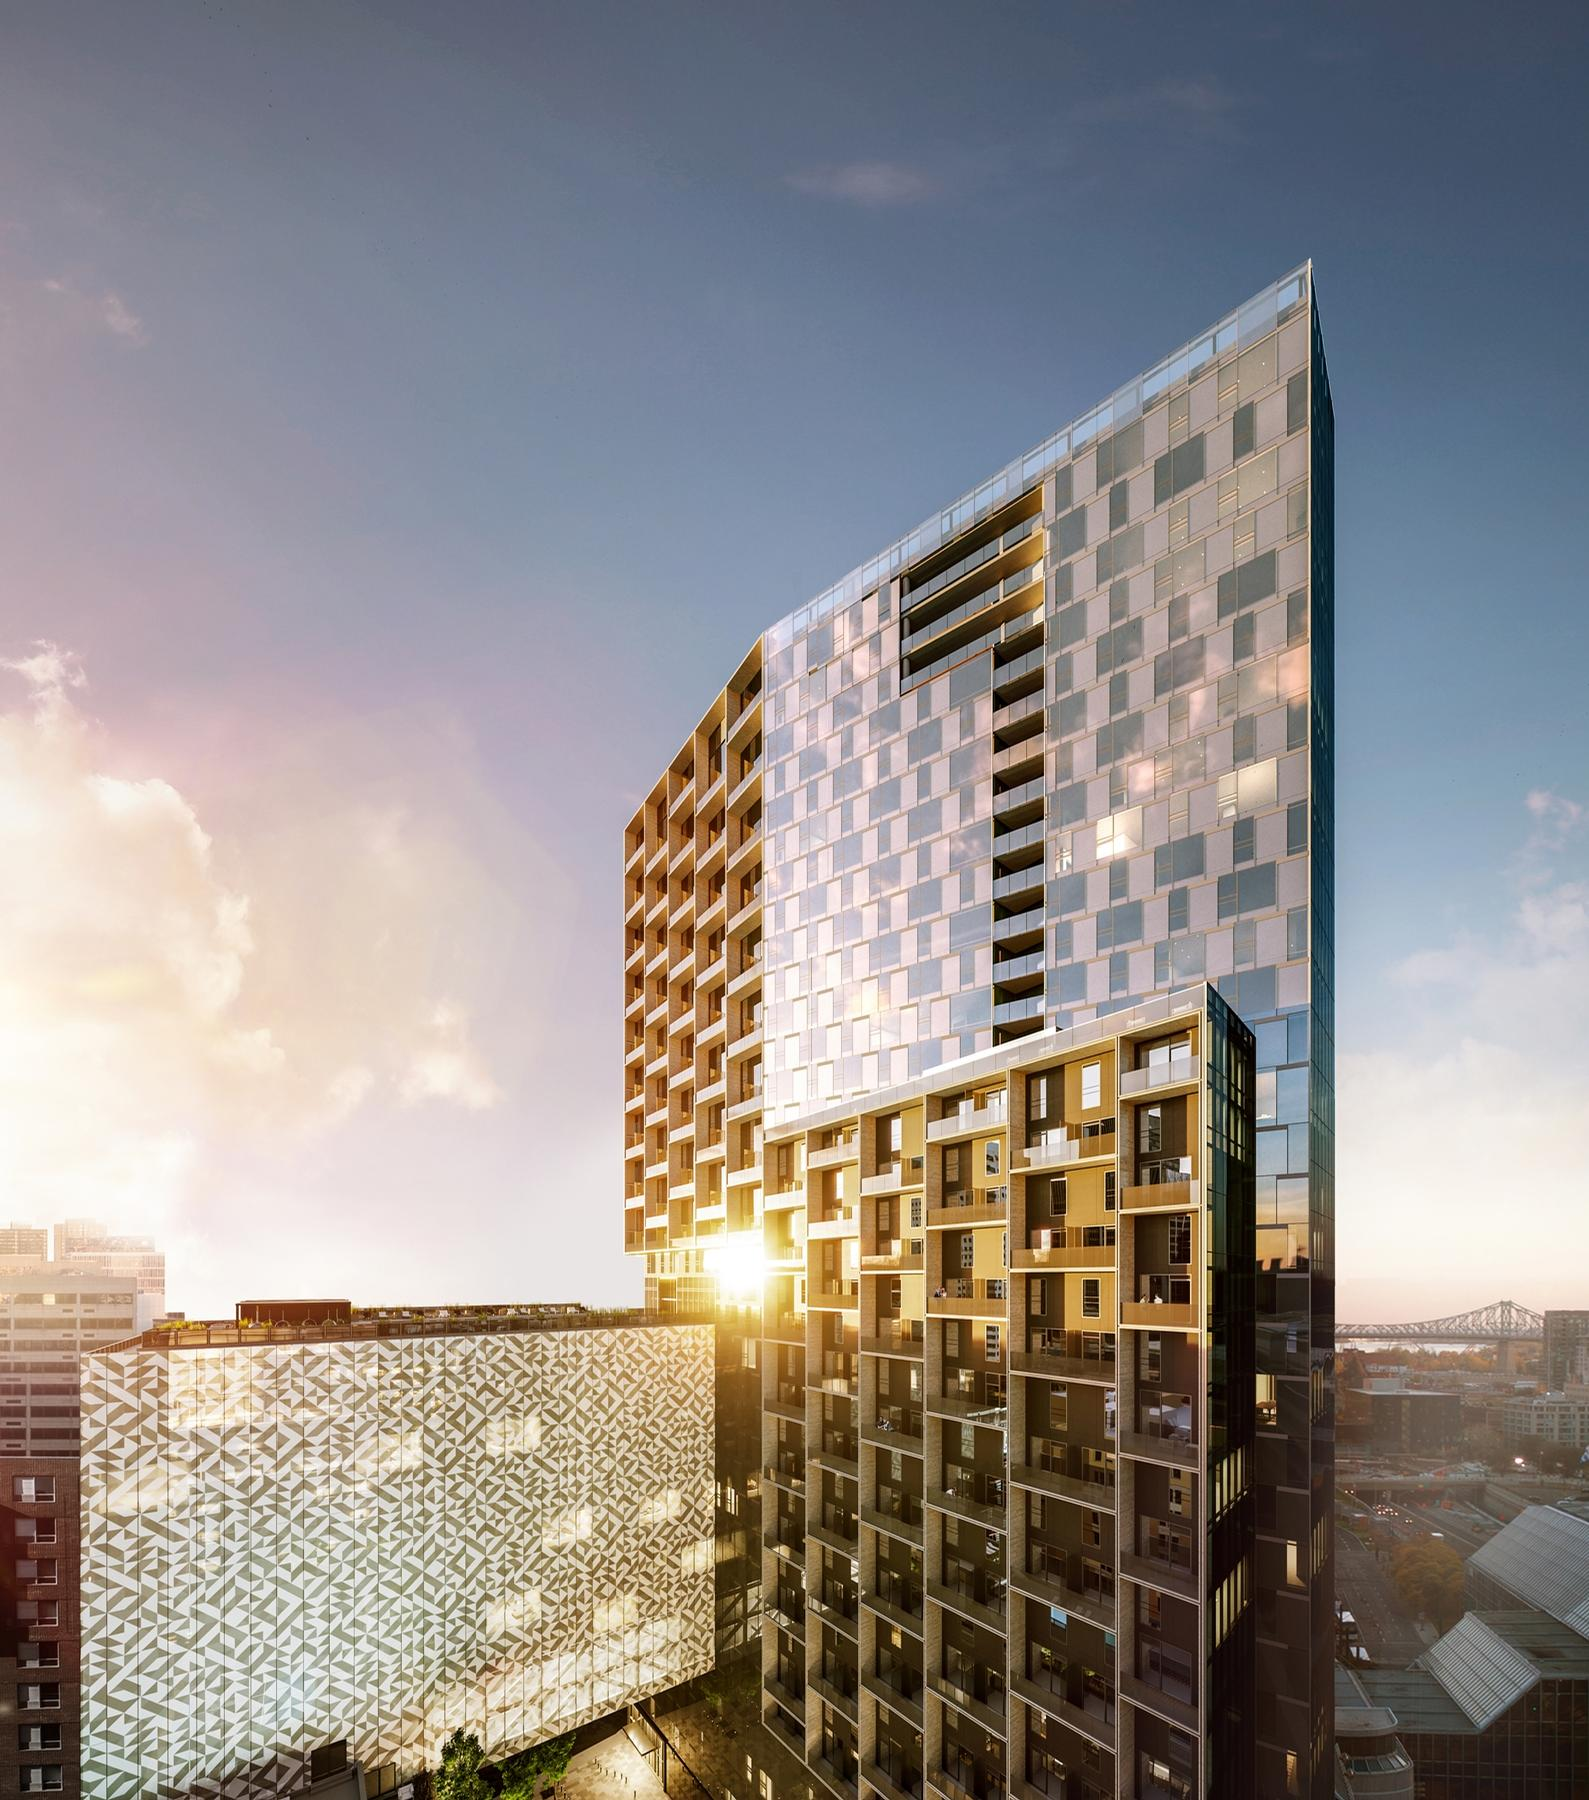 It will house apartments, a hotel, offices, retail units and commercial space / Humaniti